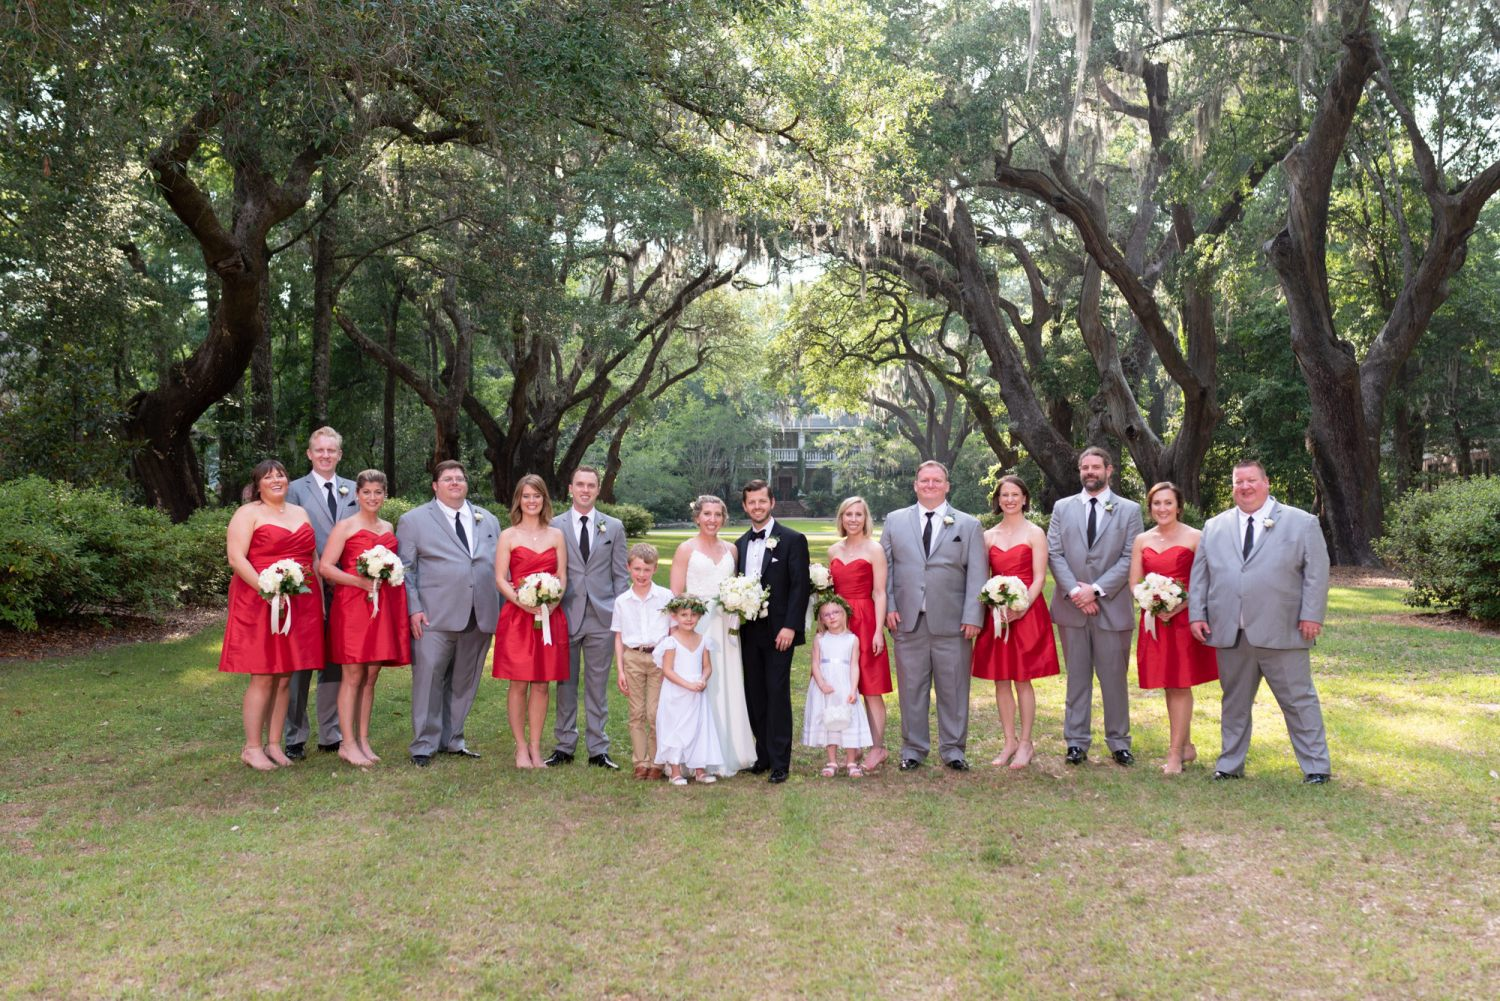 Wedding party under the oak trees - Wachesaw Plantation